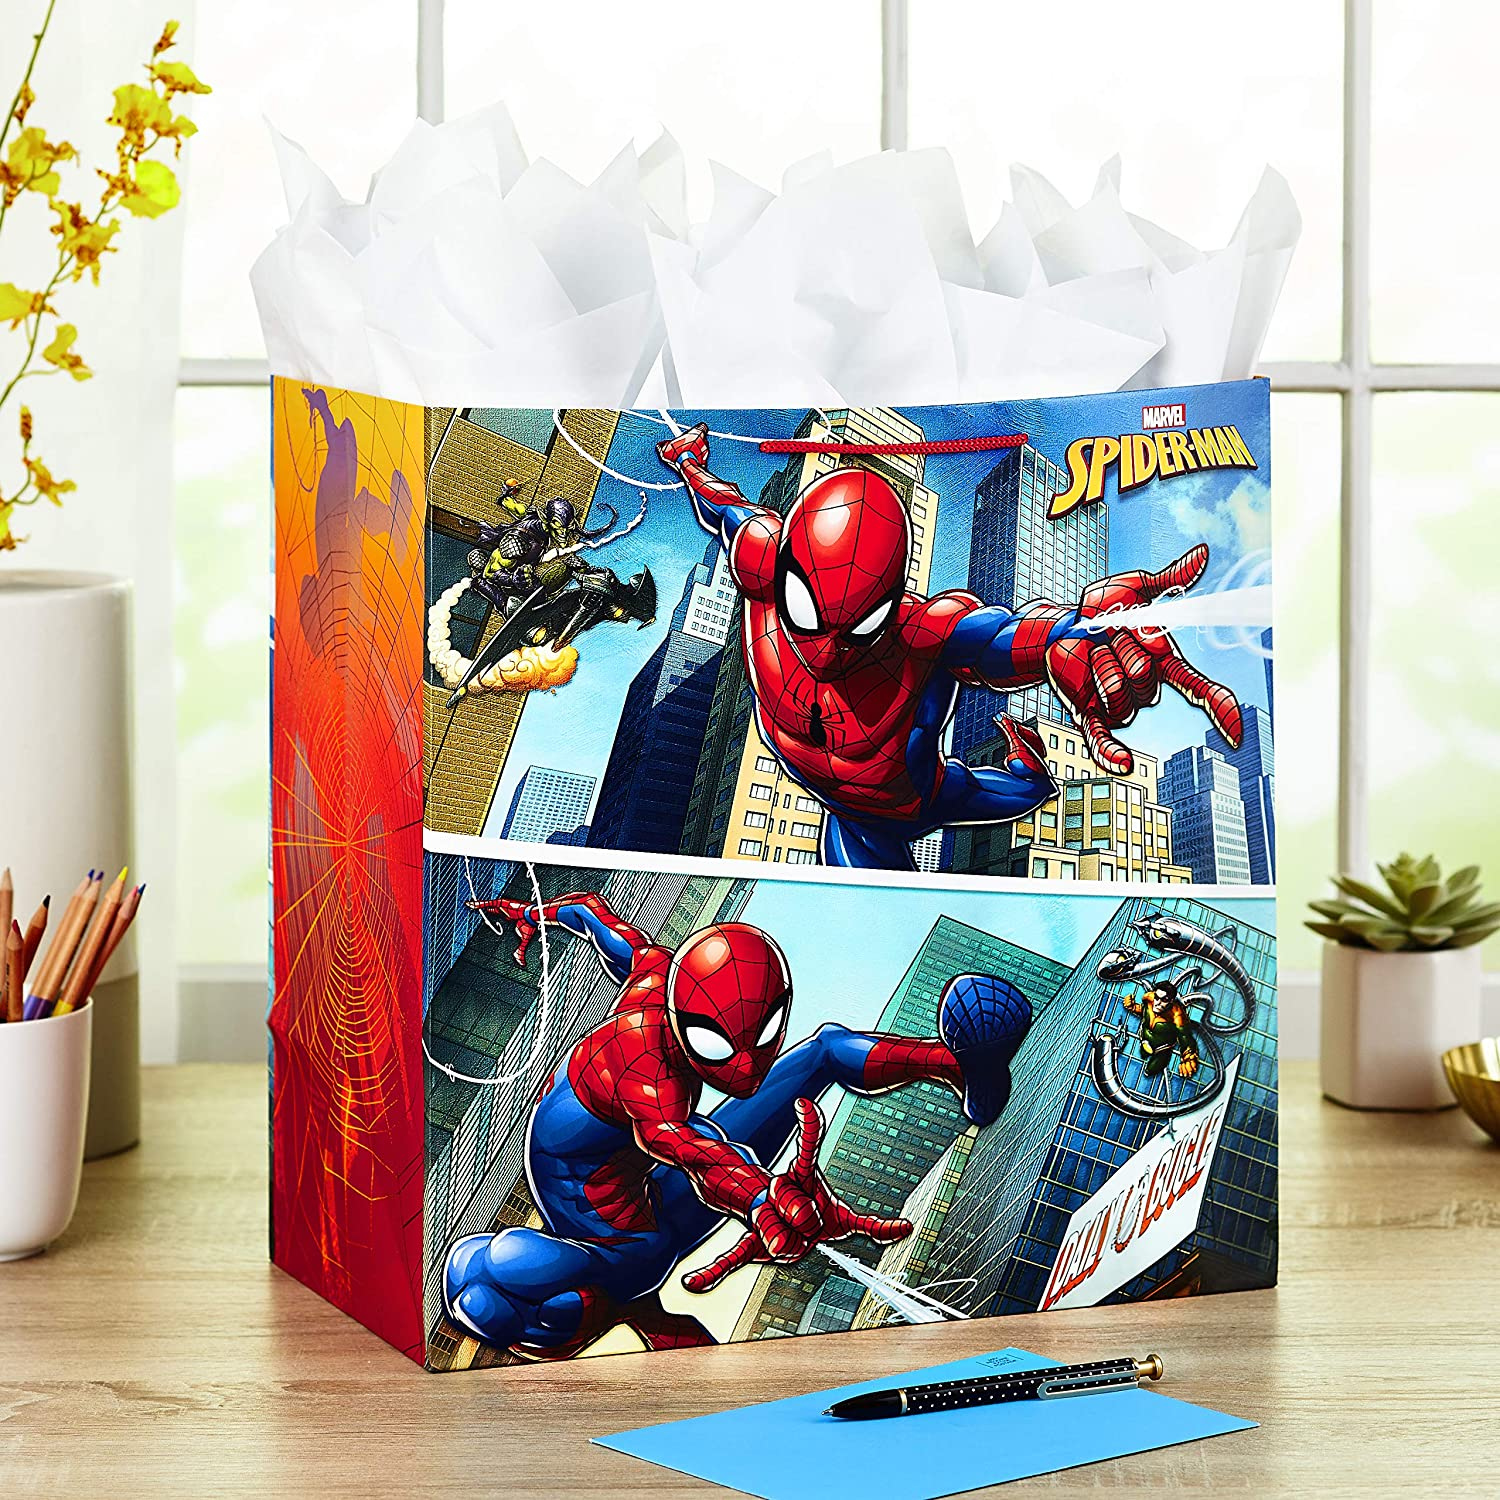 Iron Man Black Widow Holidays Captain America Fathers Day and More for Birthdays Thor Pack of 3, 105 sq. ft. ttl. Hallmark Avengers Wrapping Paper Bundle with Cut Lines on Reverse